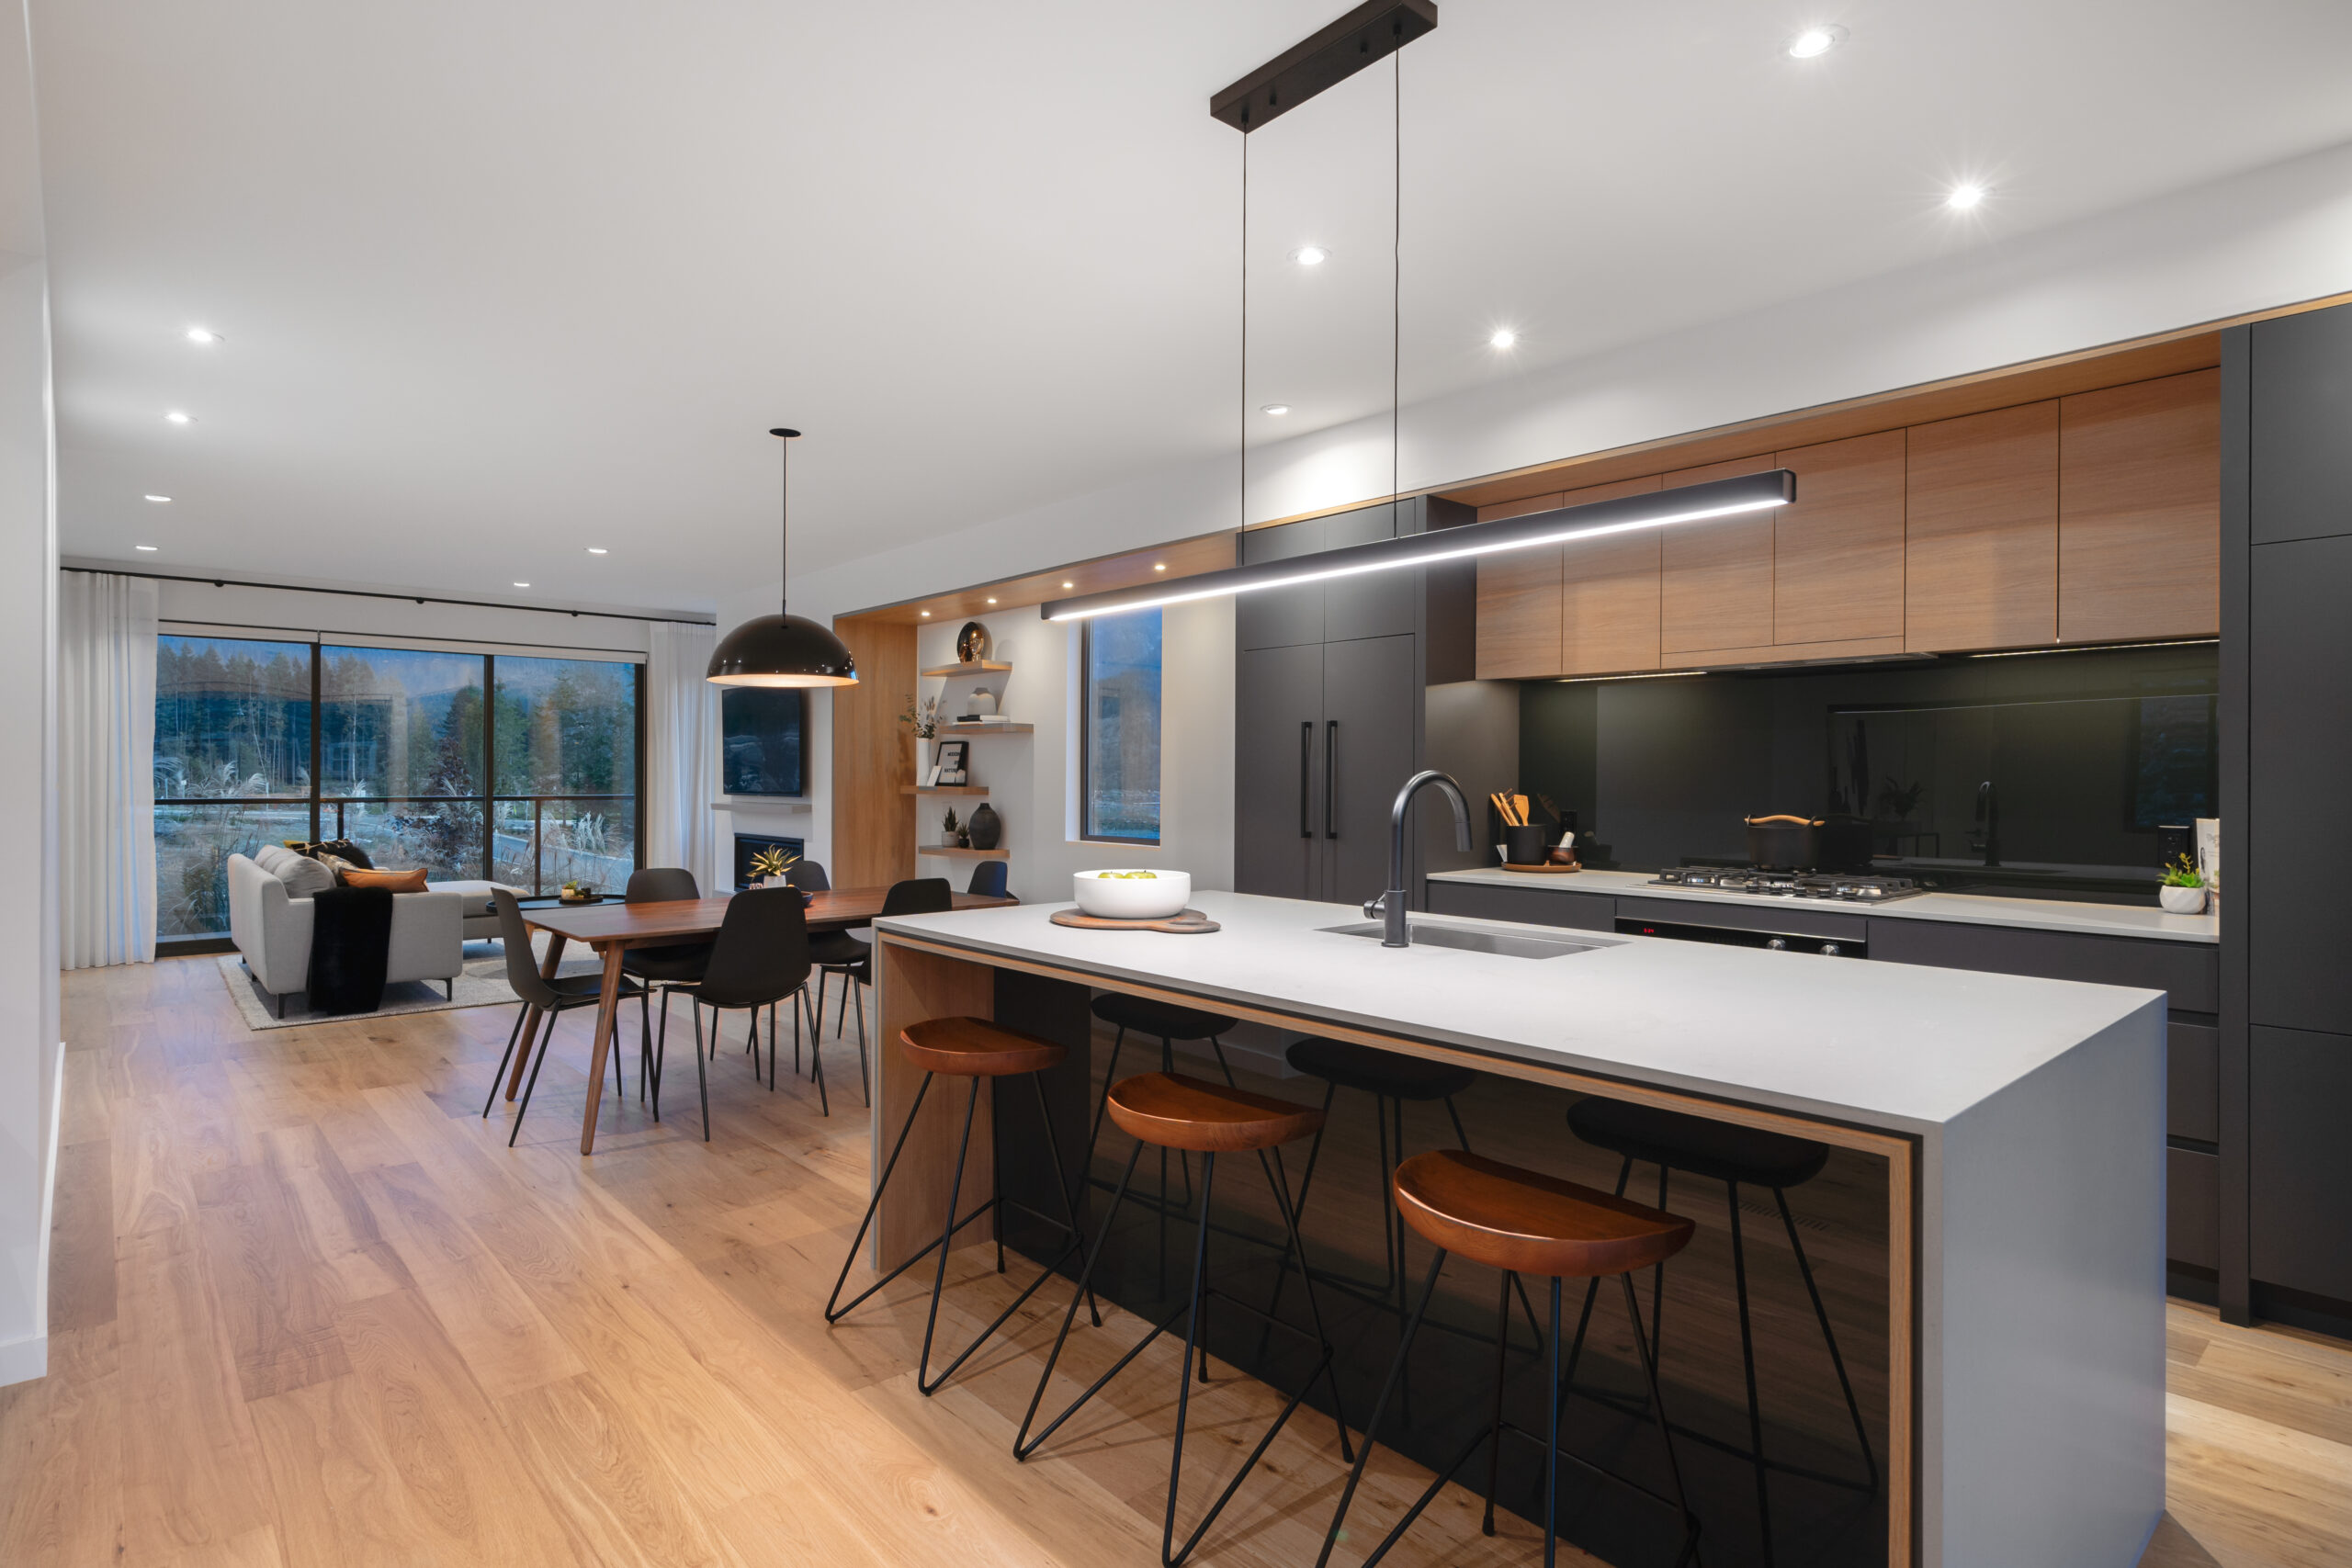 Picture of open concept living room and kitchen with modern kitchen island with linear designer pendant light, and clean minimalist cabinets